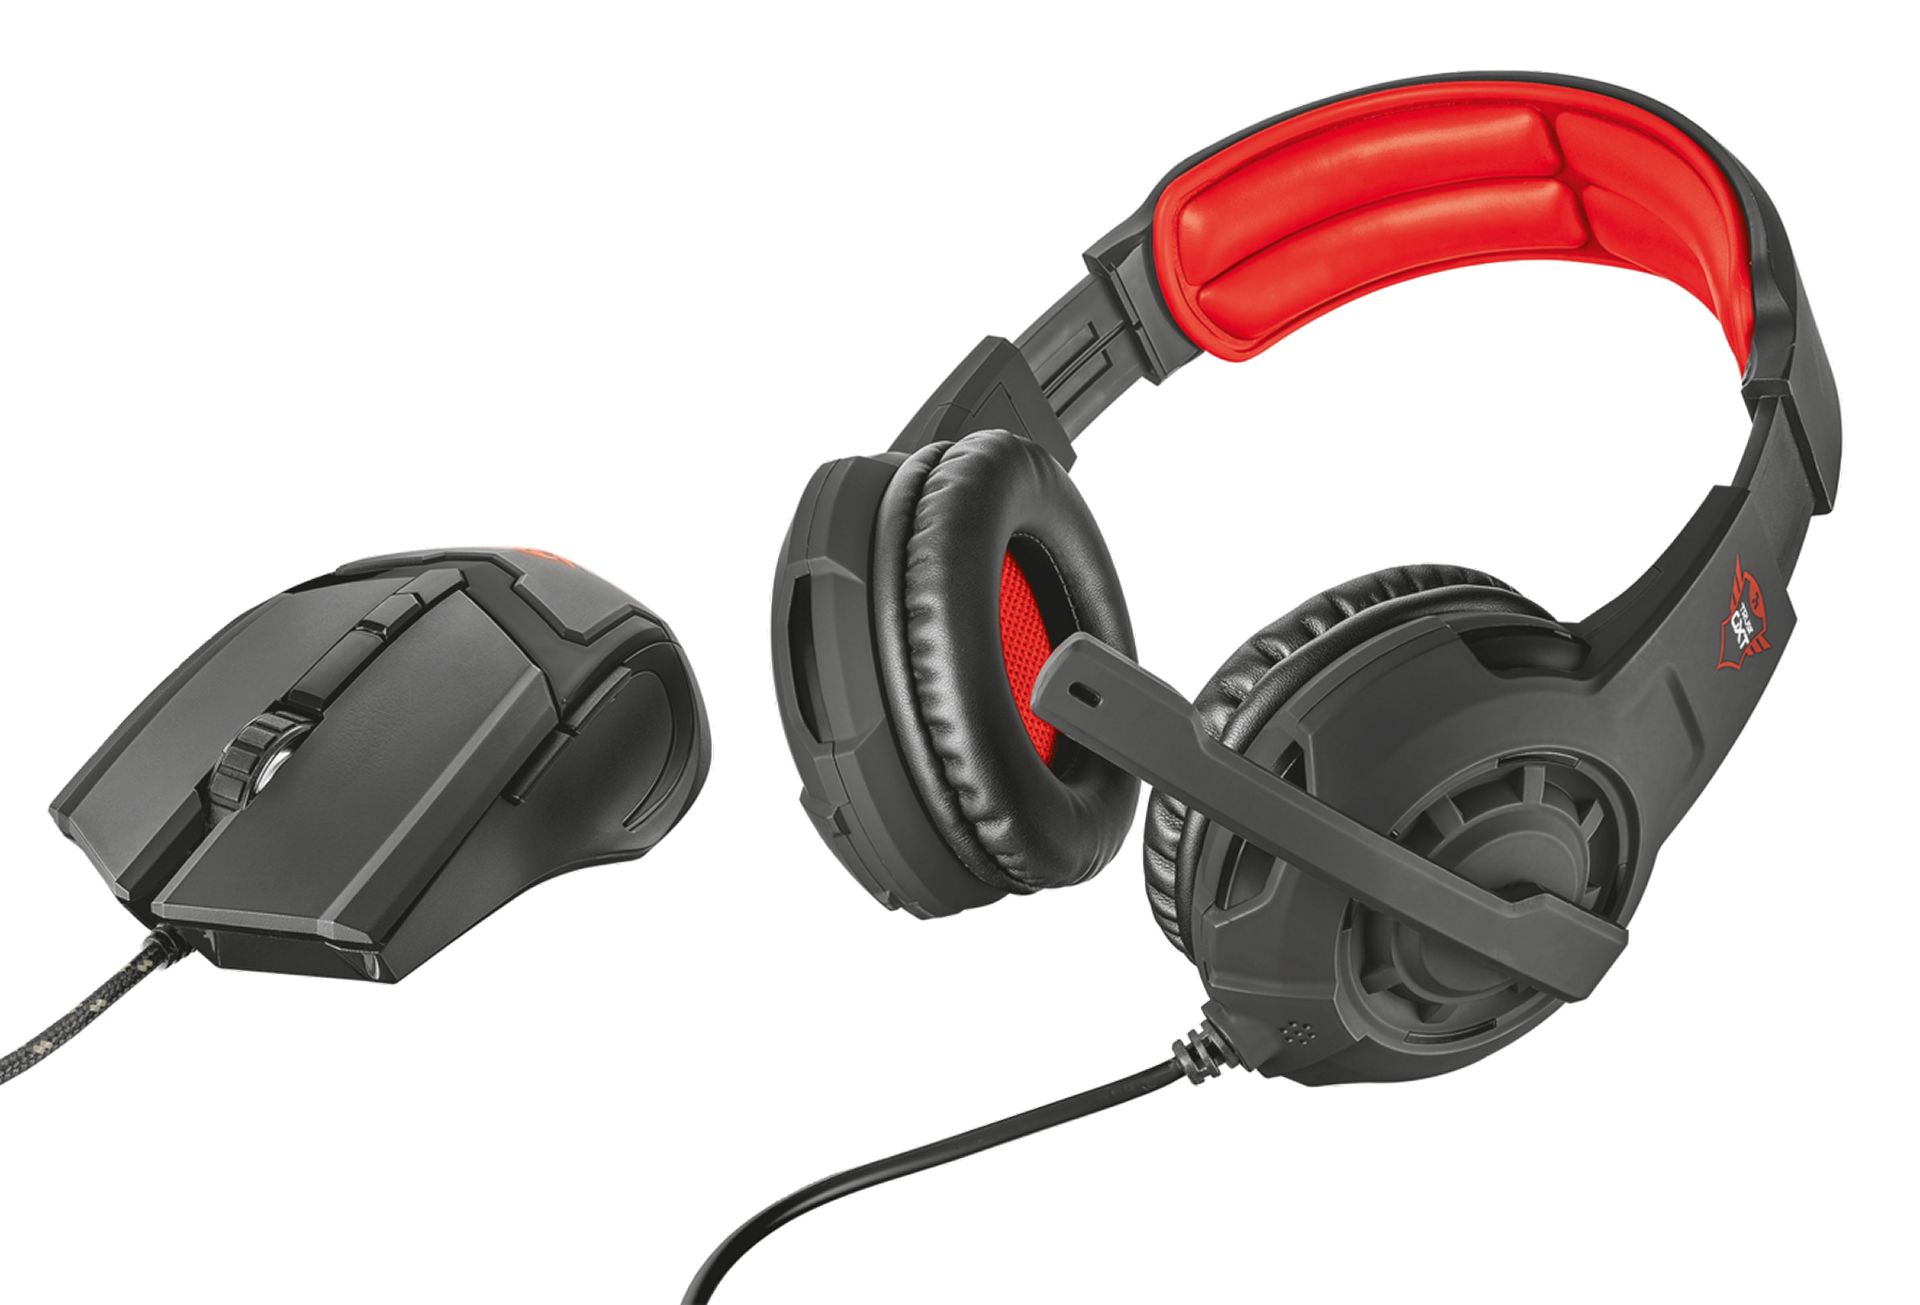 - Gaming headset & mouse